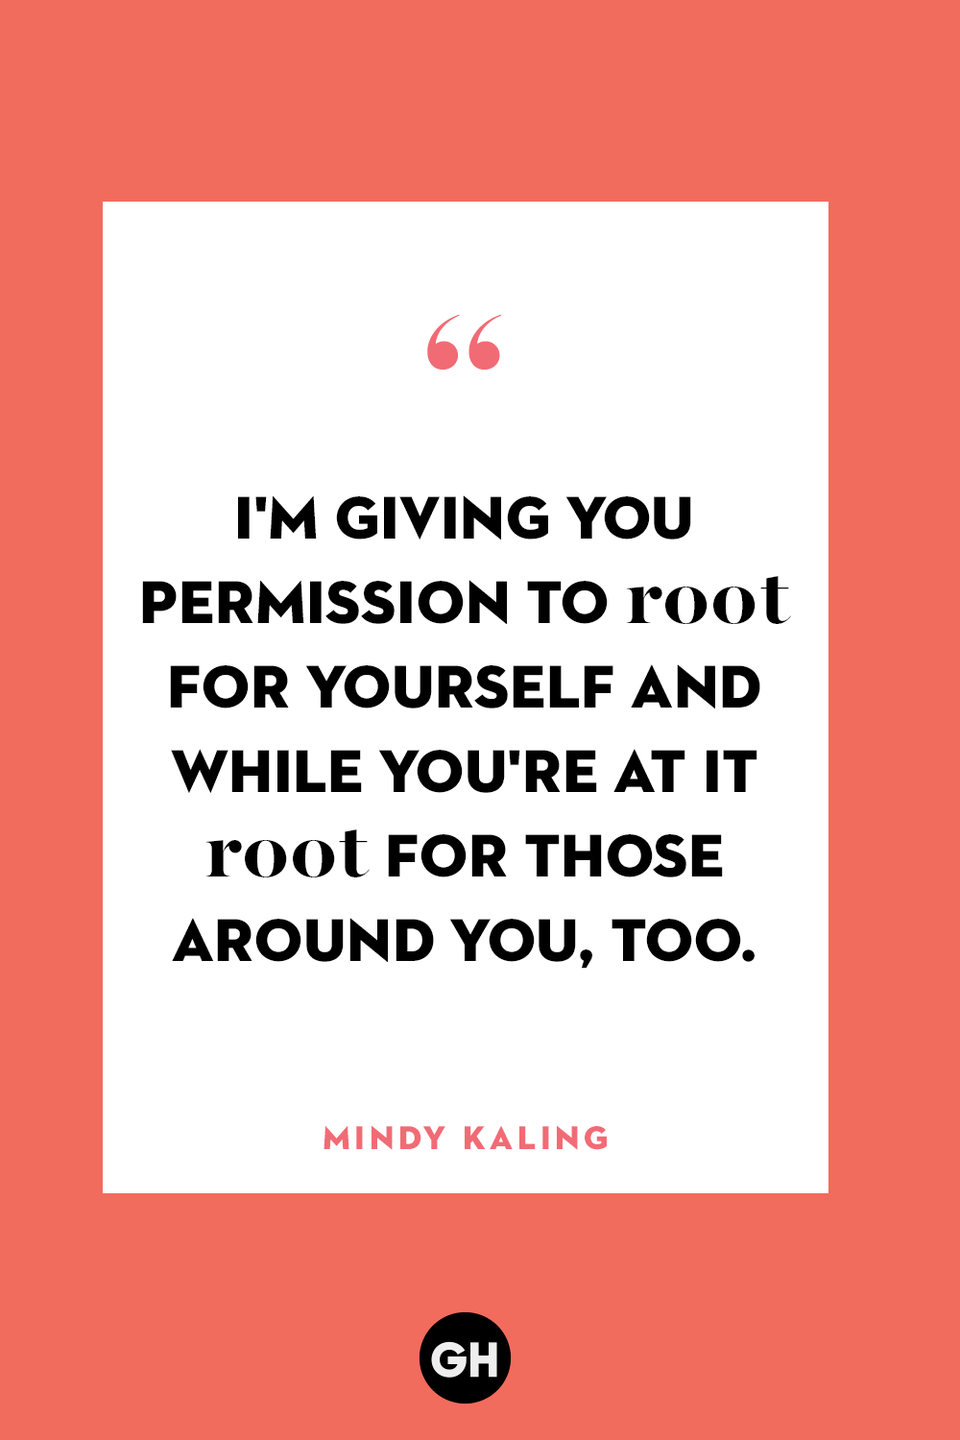 <p>I'm giving you permission to root for yourself and while you're at it root for those around you, too.</p>